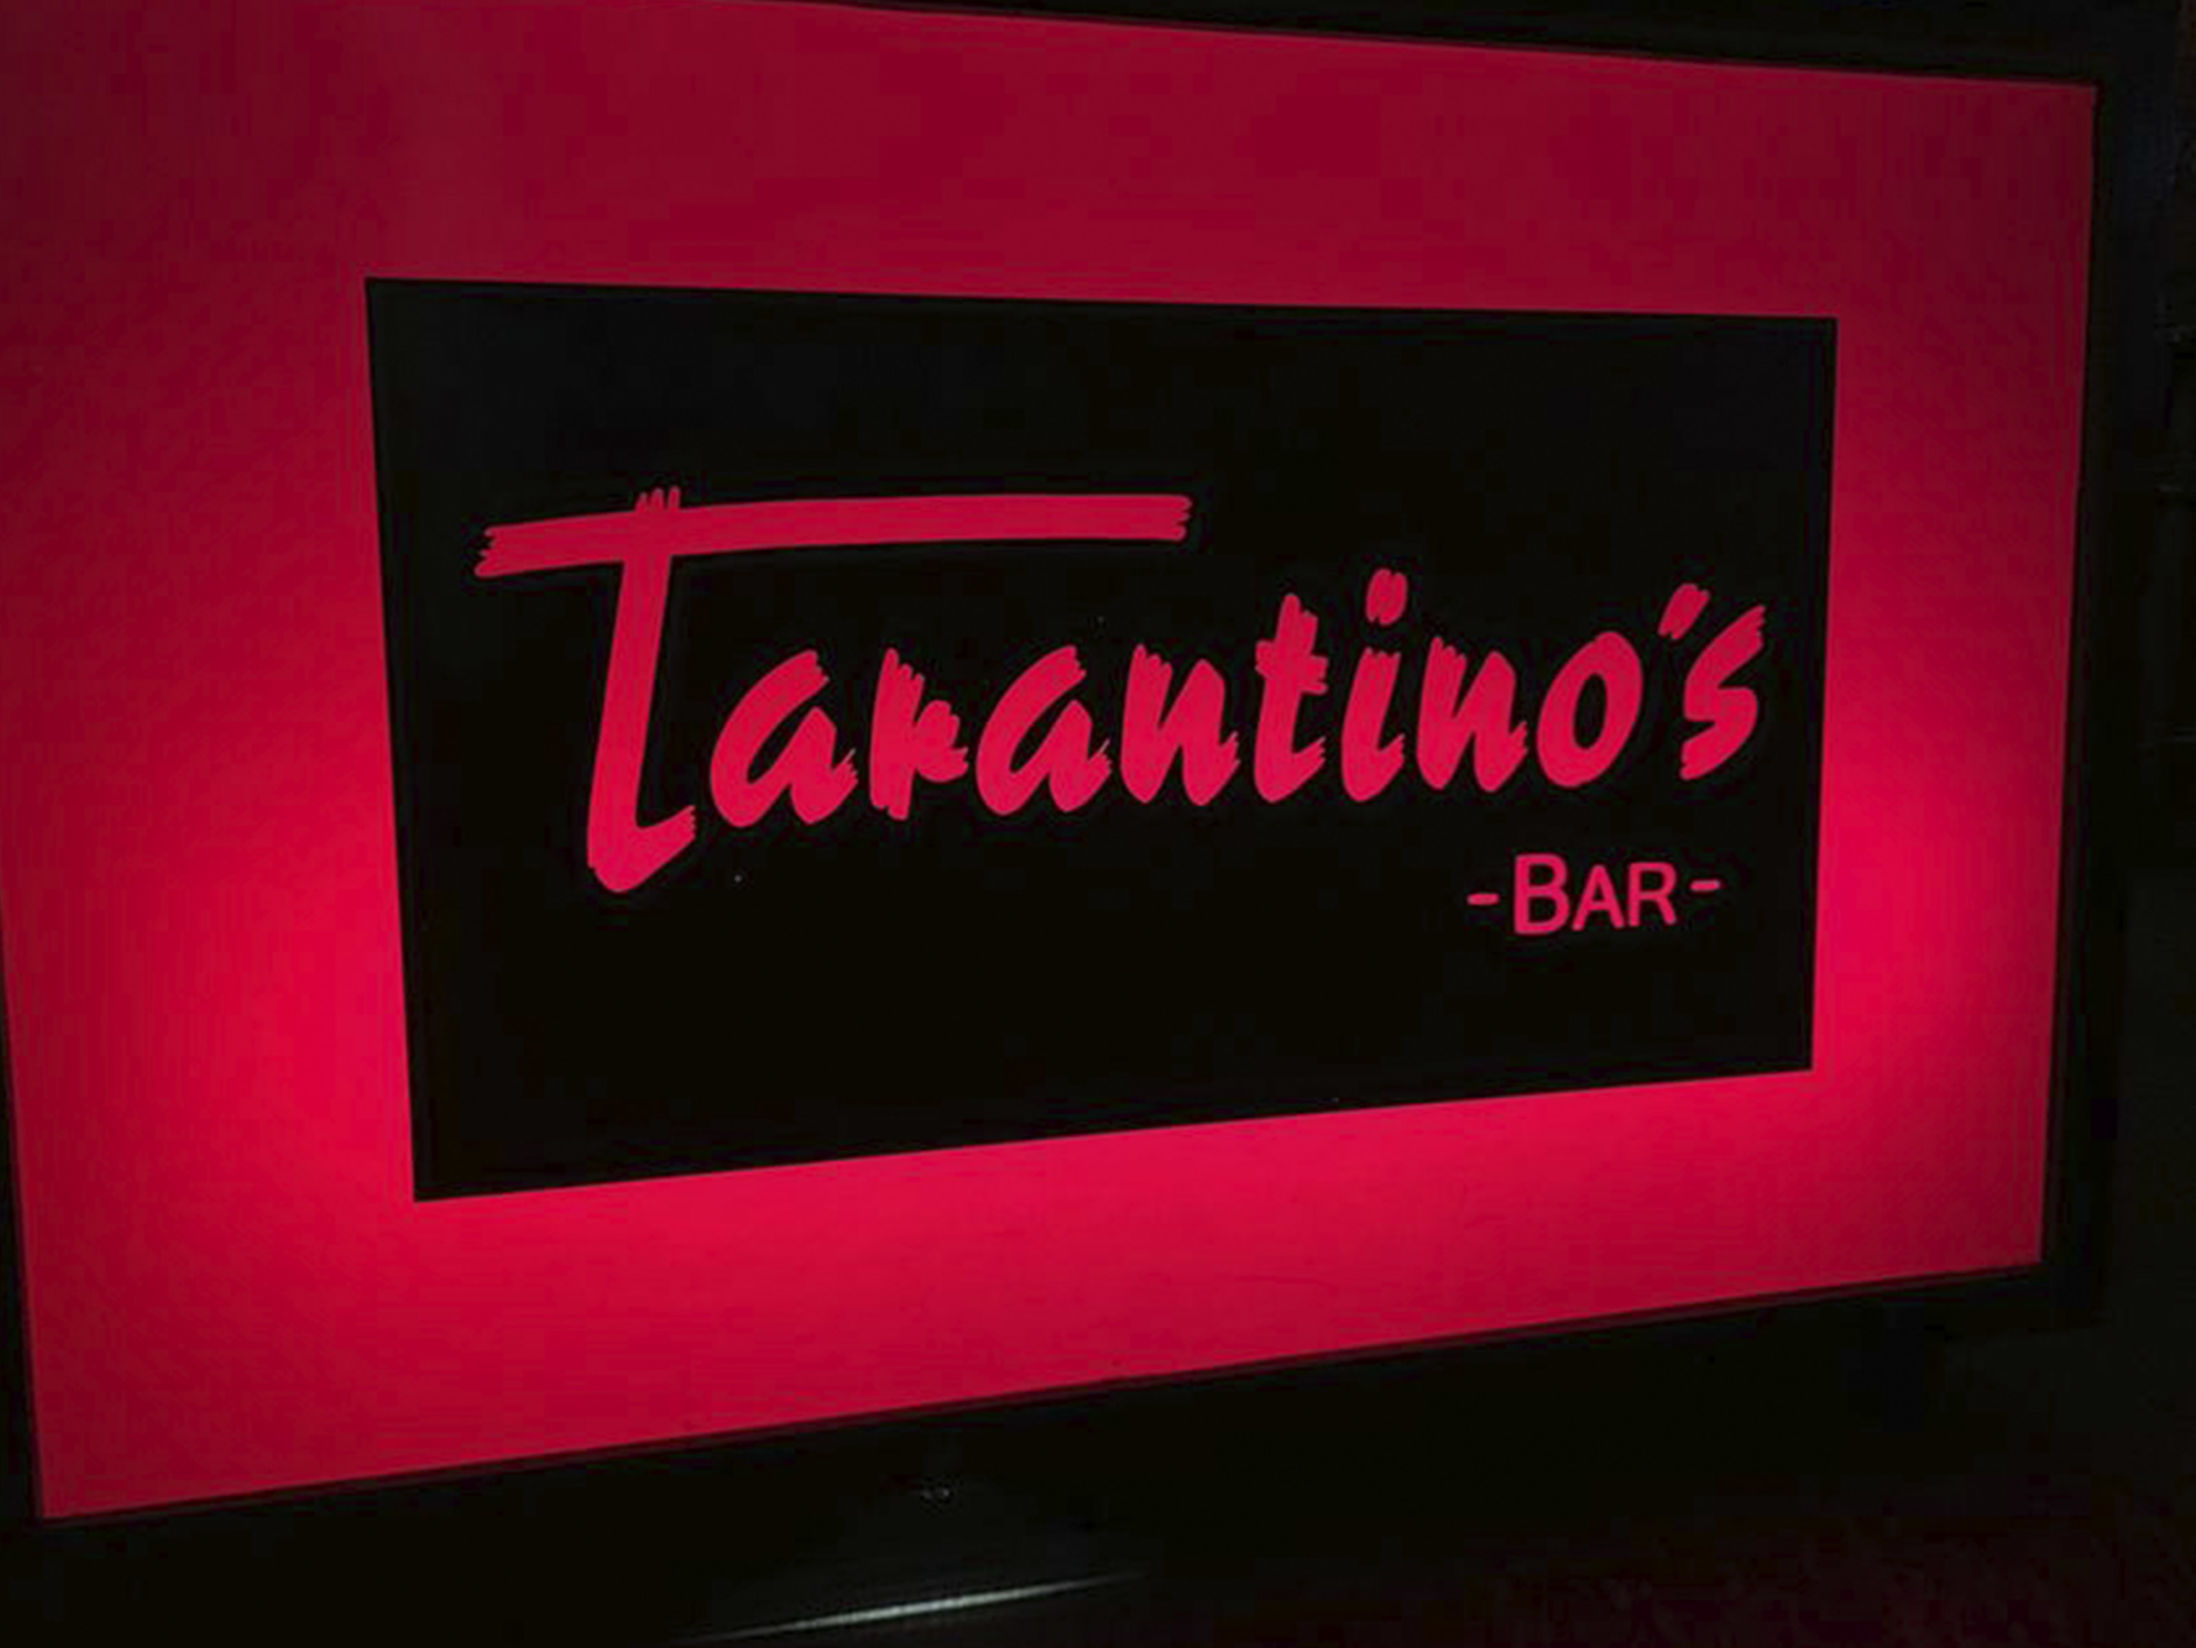 Best Bars in Berlin - Tarantino's Bar